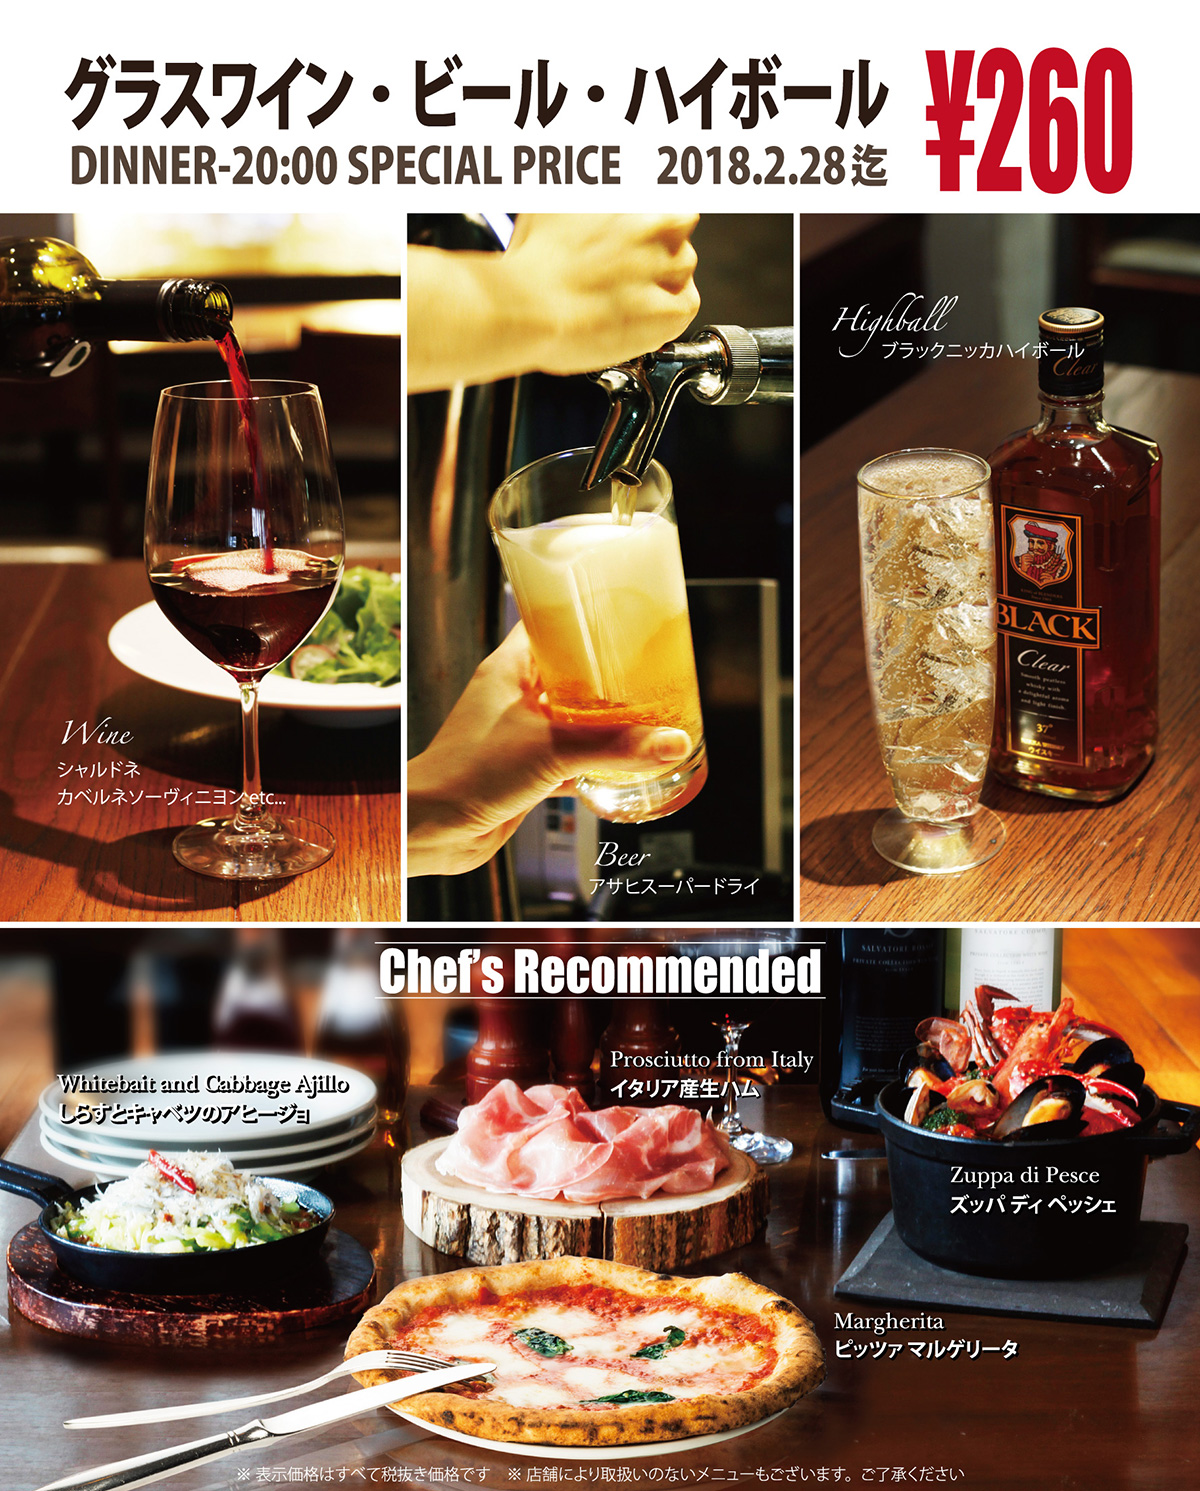 "Glass of wine beer highball ""260 yen"" fair now being held!"